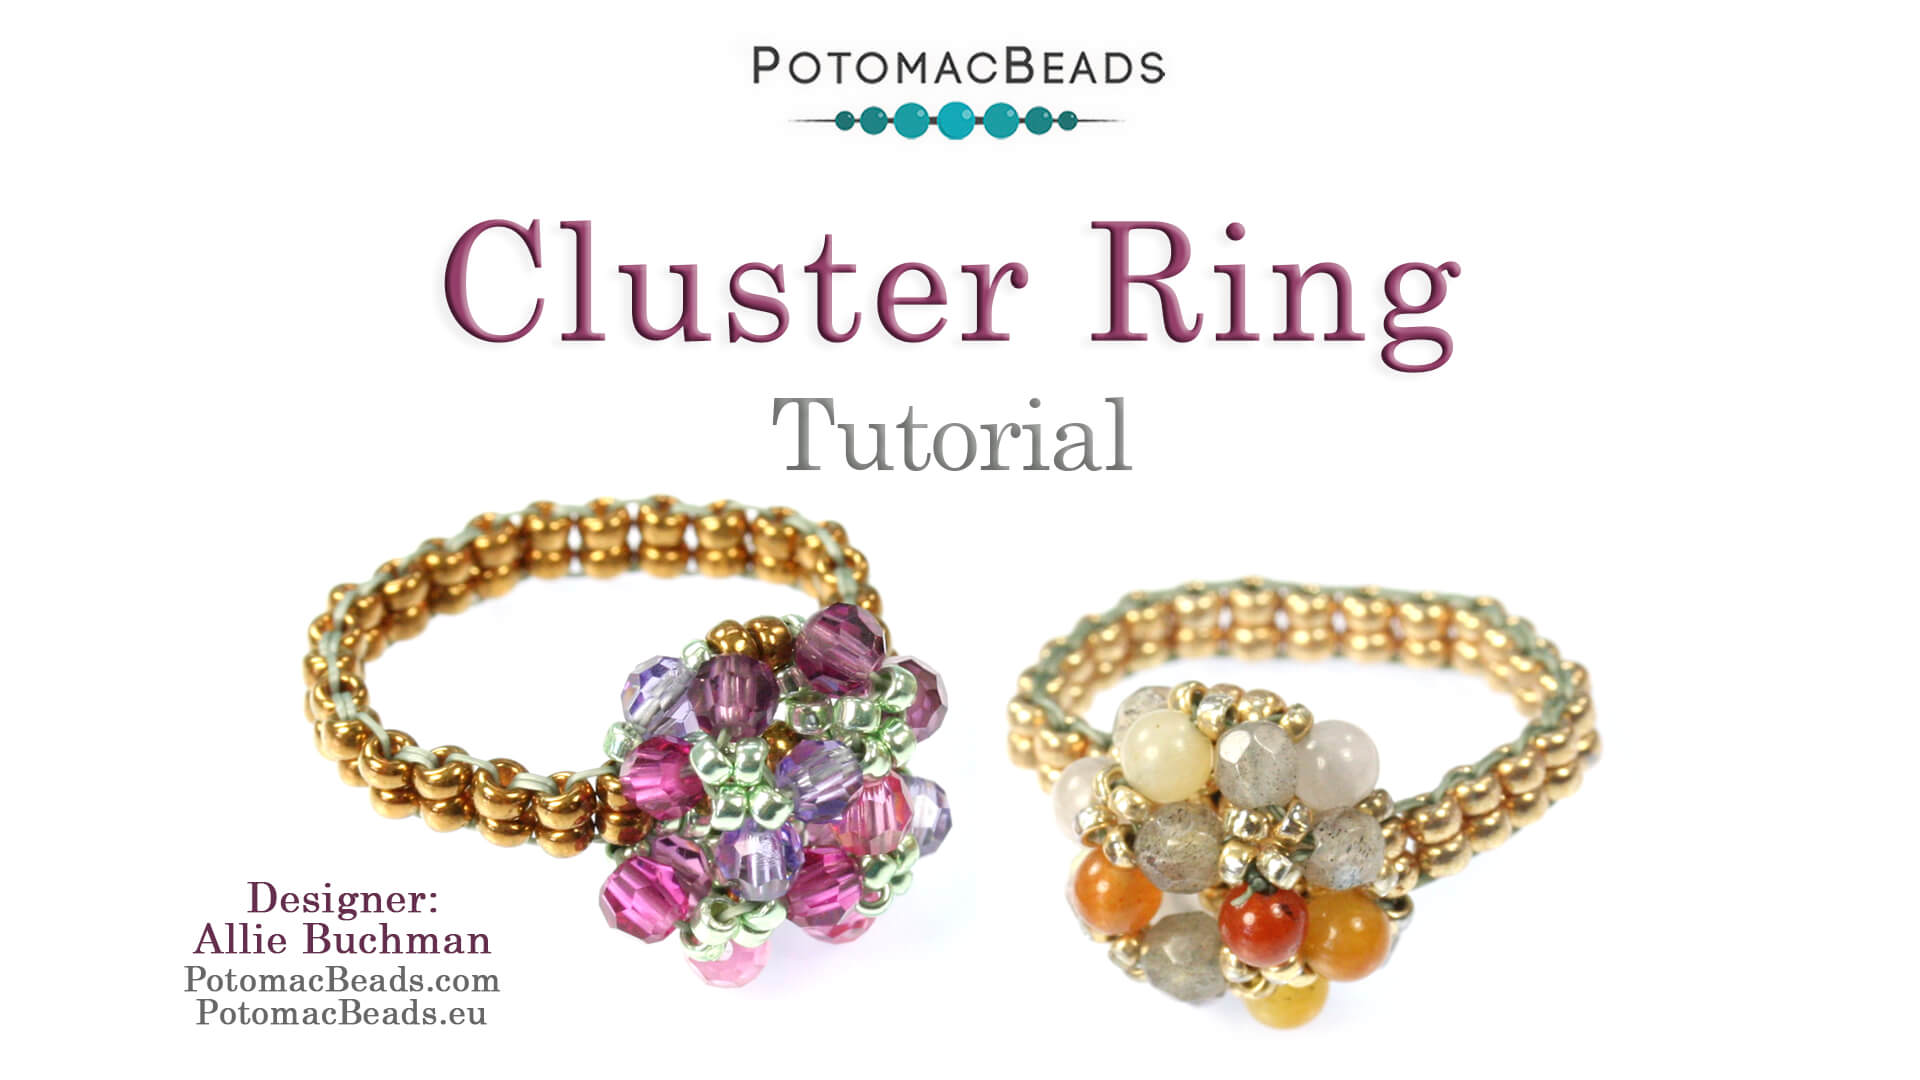 How to Bead Jewelry / Videos Sorted by Beads / All Other Bead Videos / Cluster Ring Tutorial